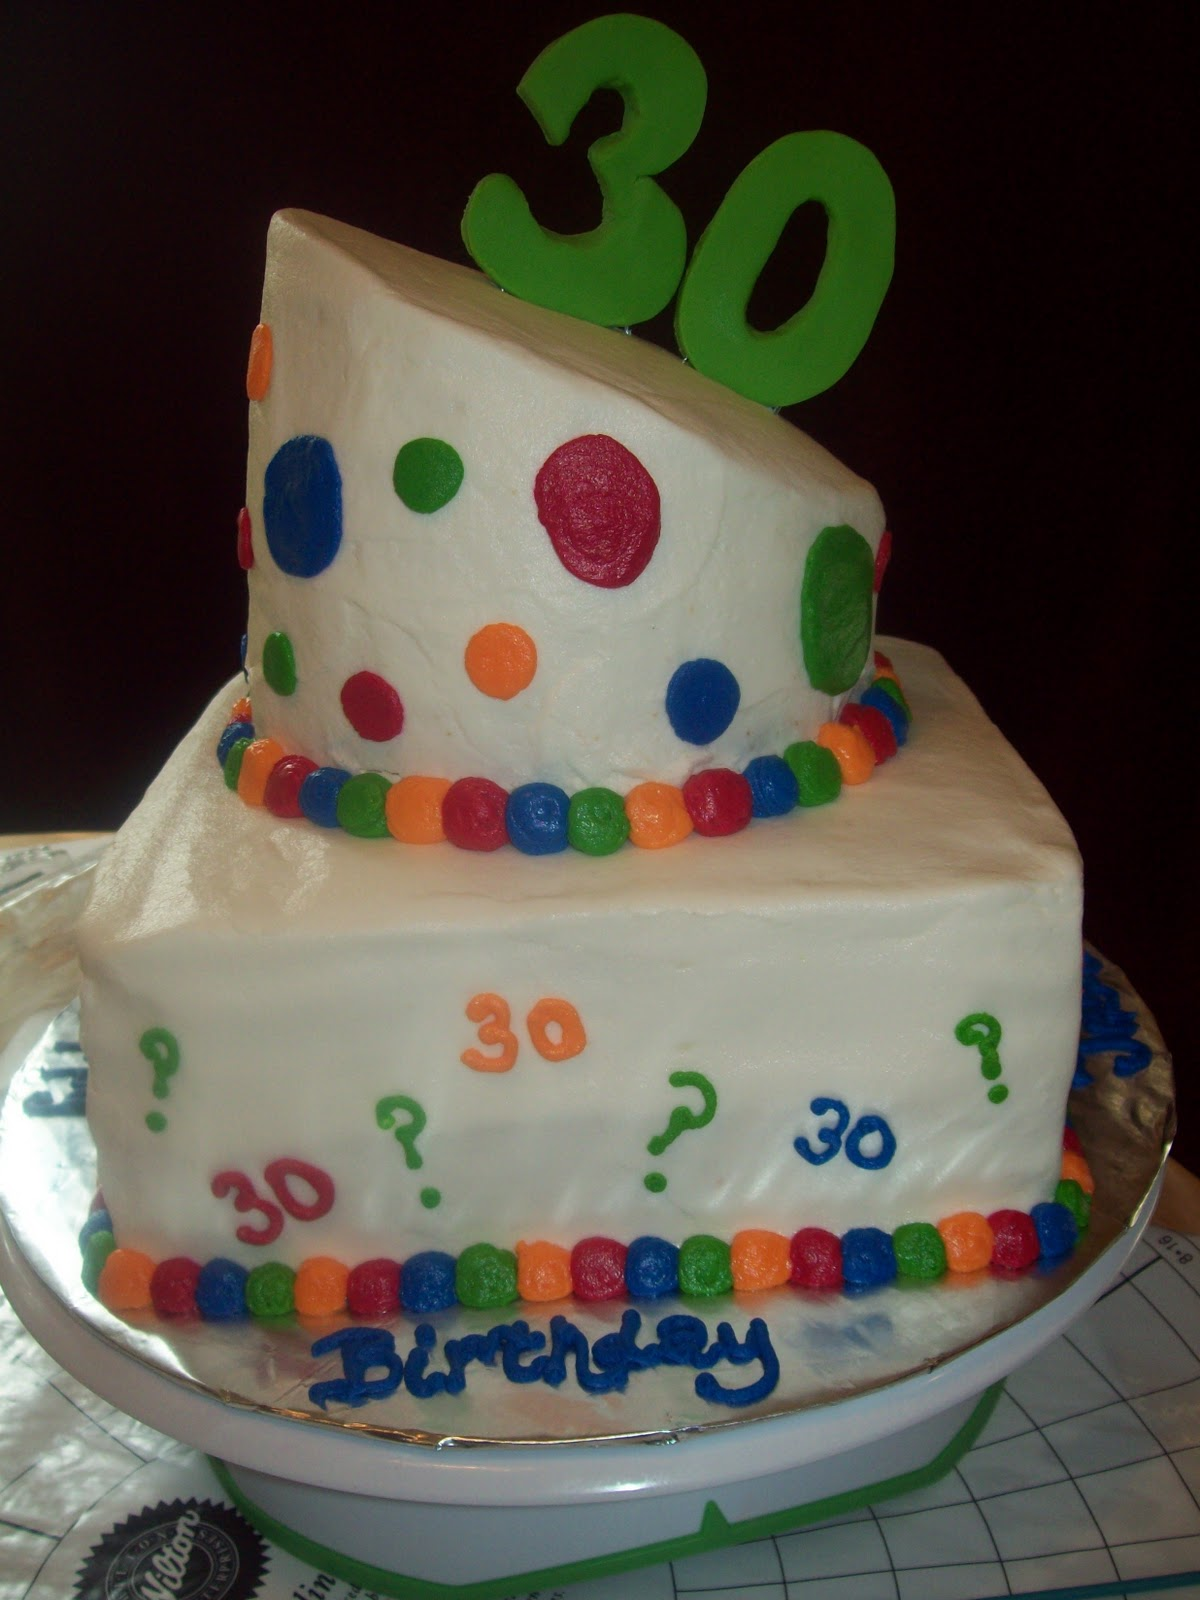 Bb cakes whimsical 30th birthday cake for 30th birthday cake decoration ideas